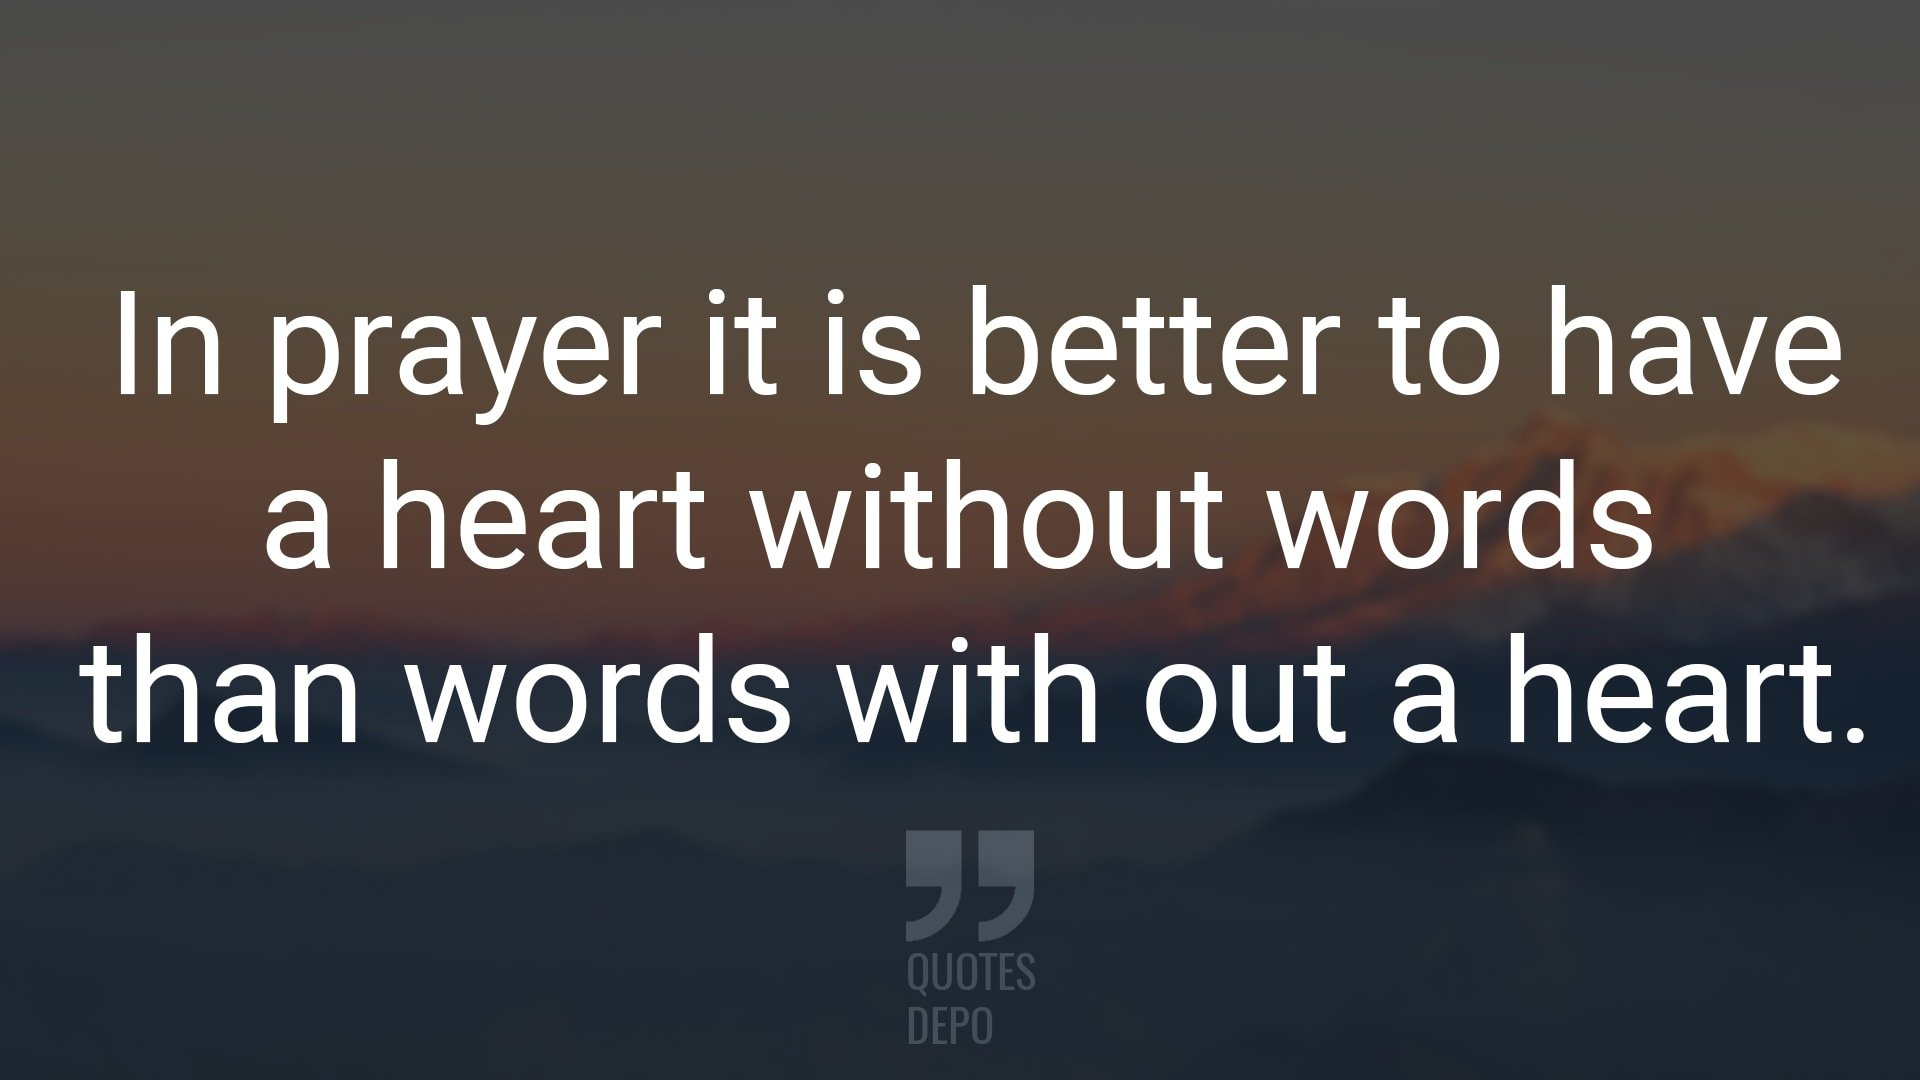 in prayer it is better to have a heart